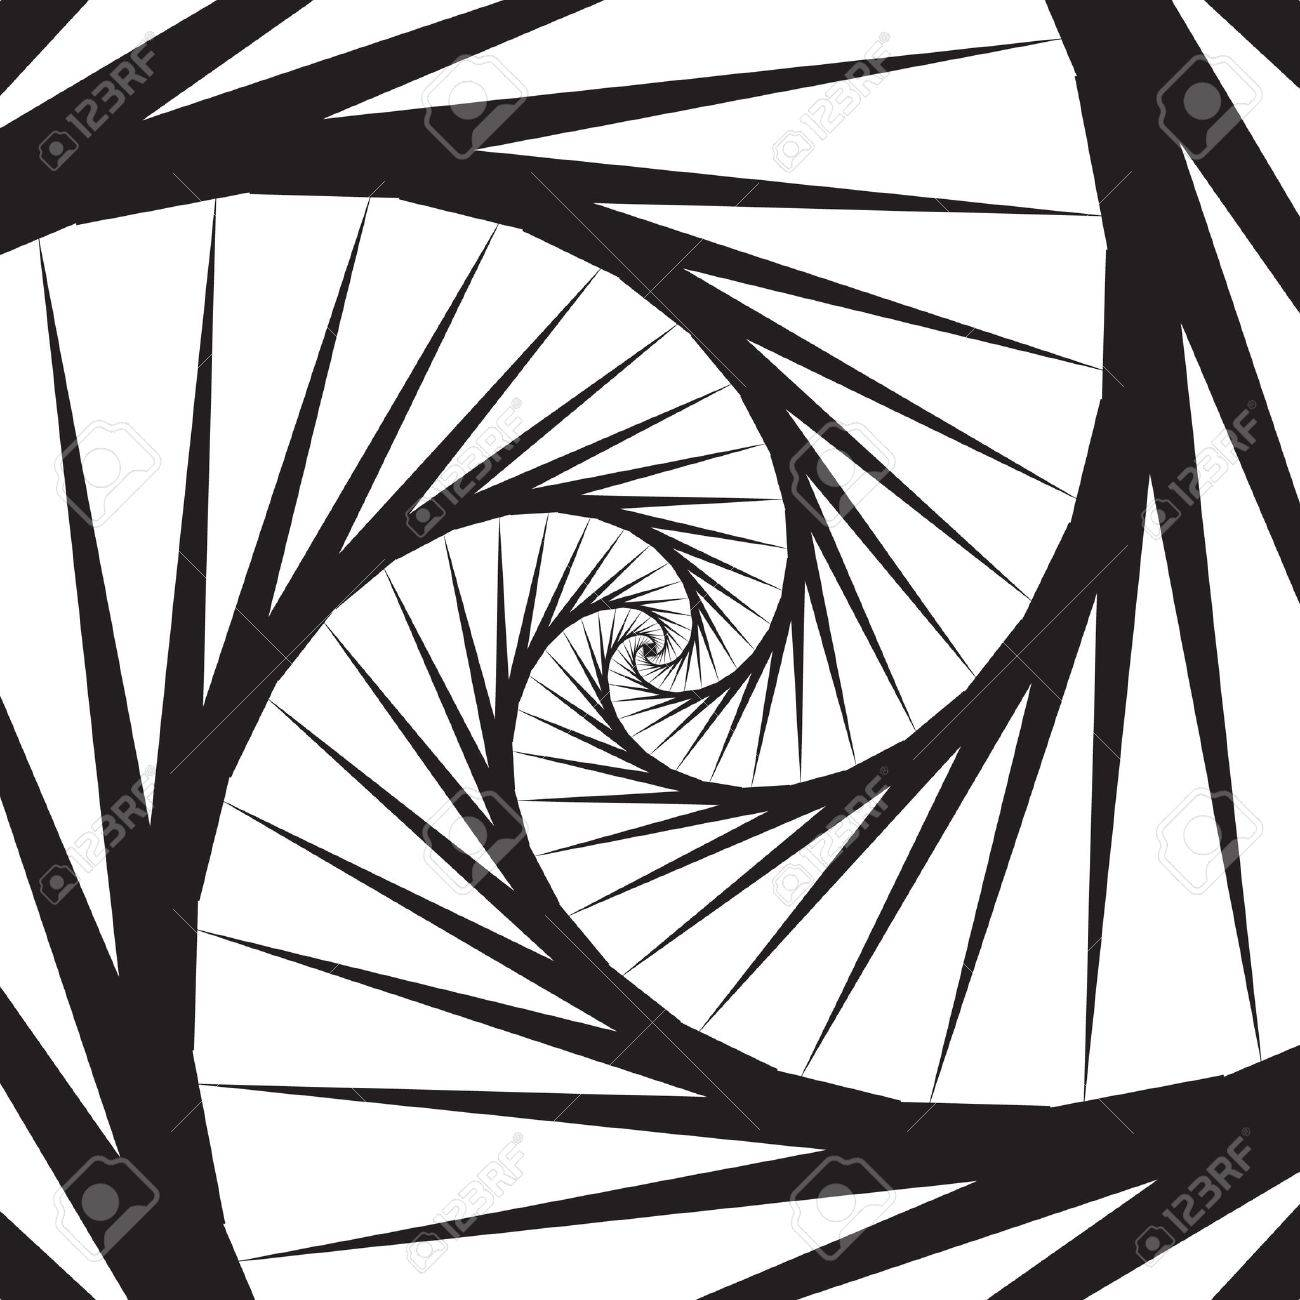 Spiral Stairs Stock Vector - 11383247